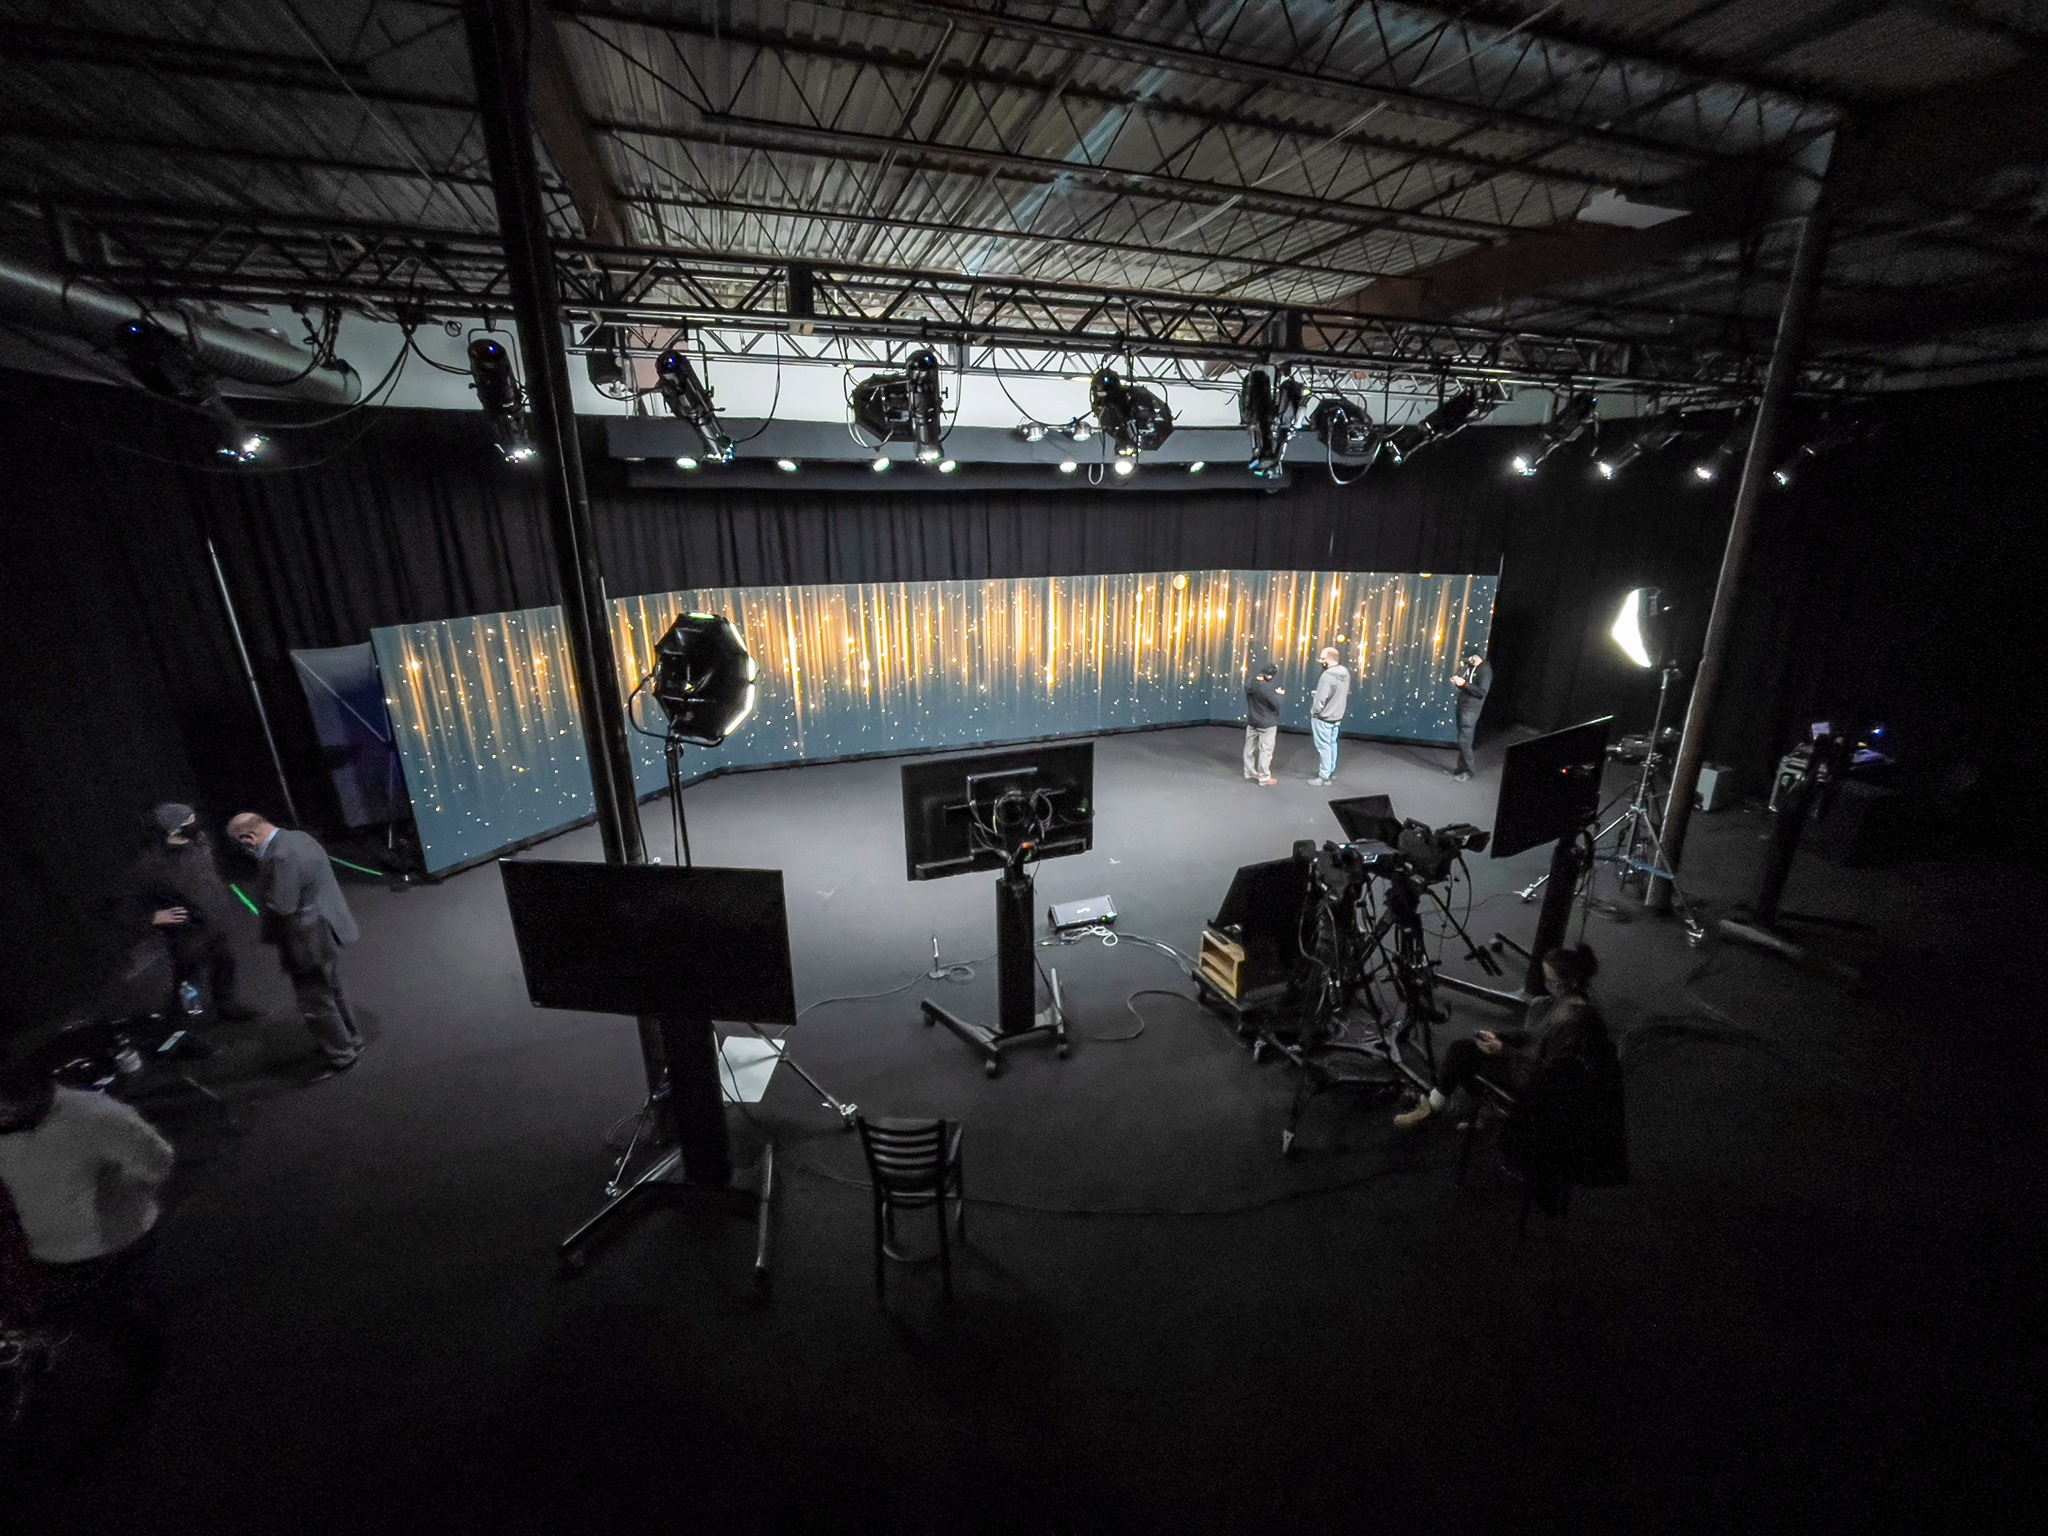 a hybrid events stage with teleprompters and video recording equipment